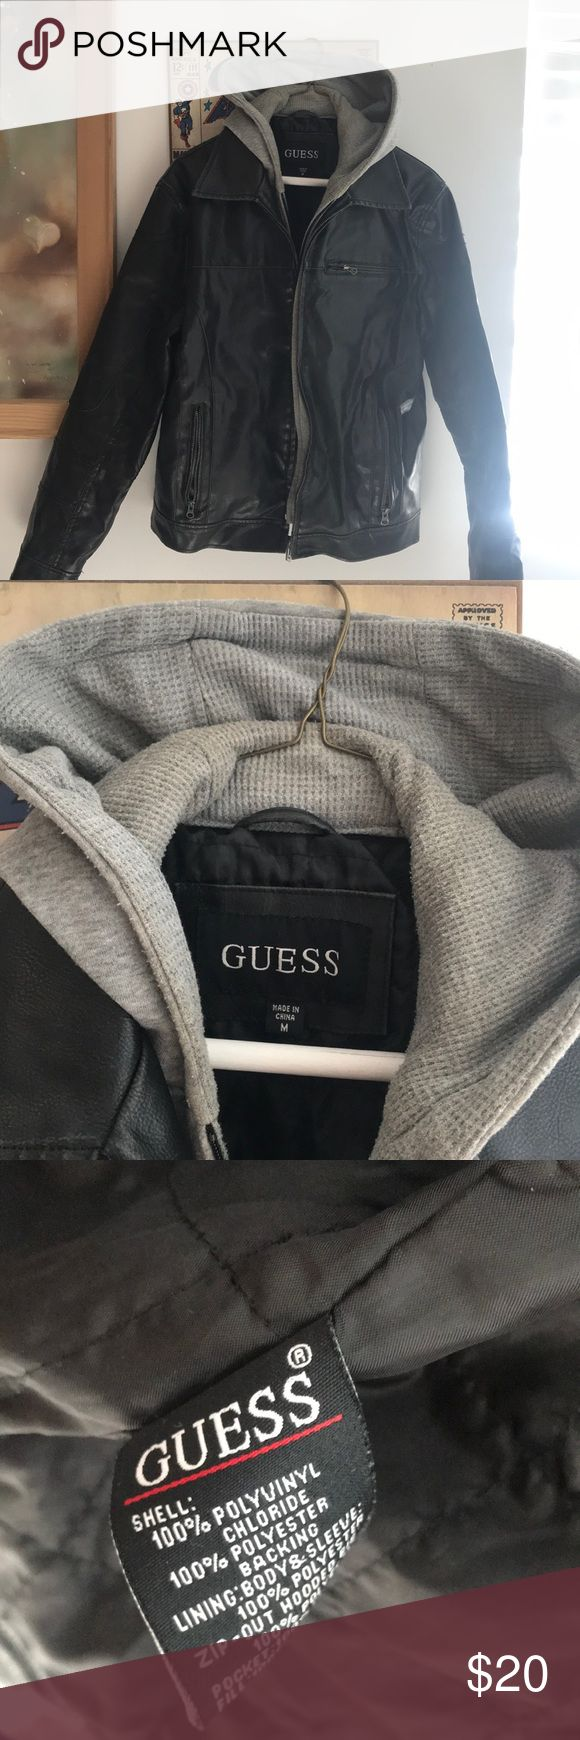 Guess men leather jacket built in hoodie Guess men size m faux leather jacket with detachable hoodie broken zipper Guess Jackets & Coats Bomber & Varsity